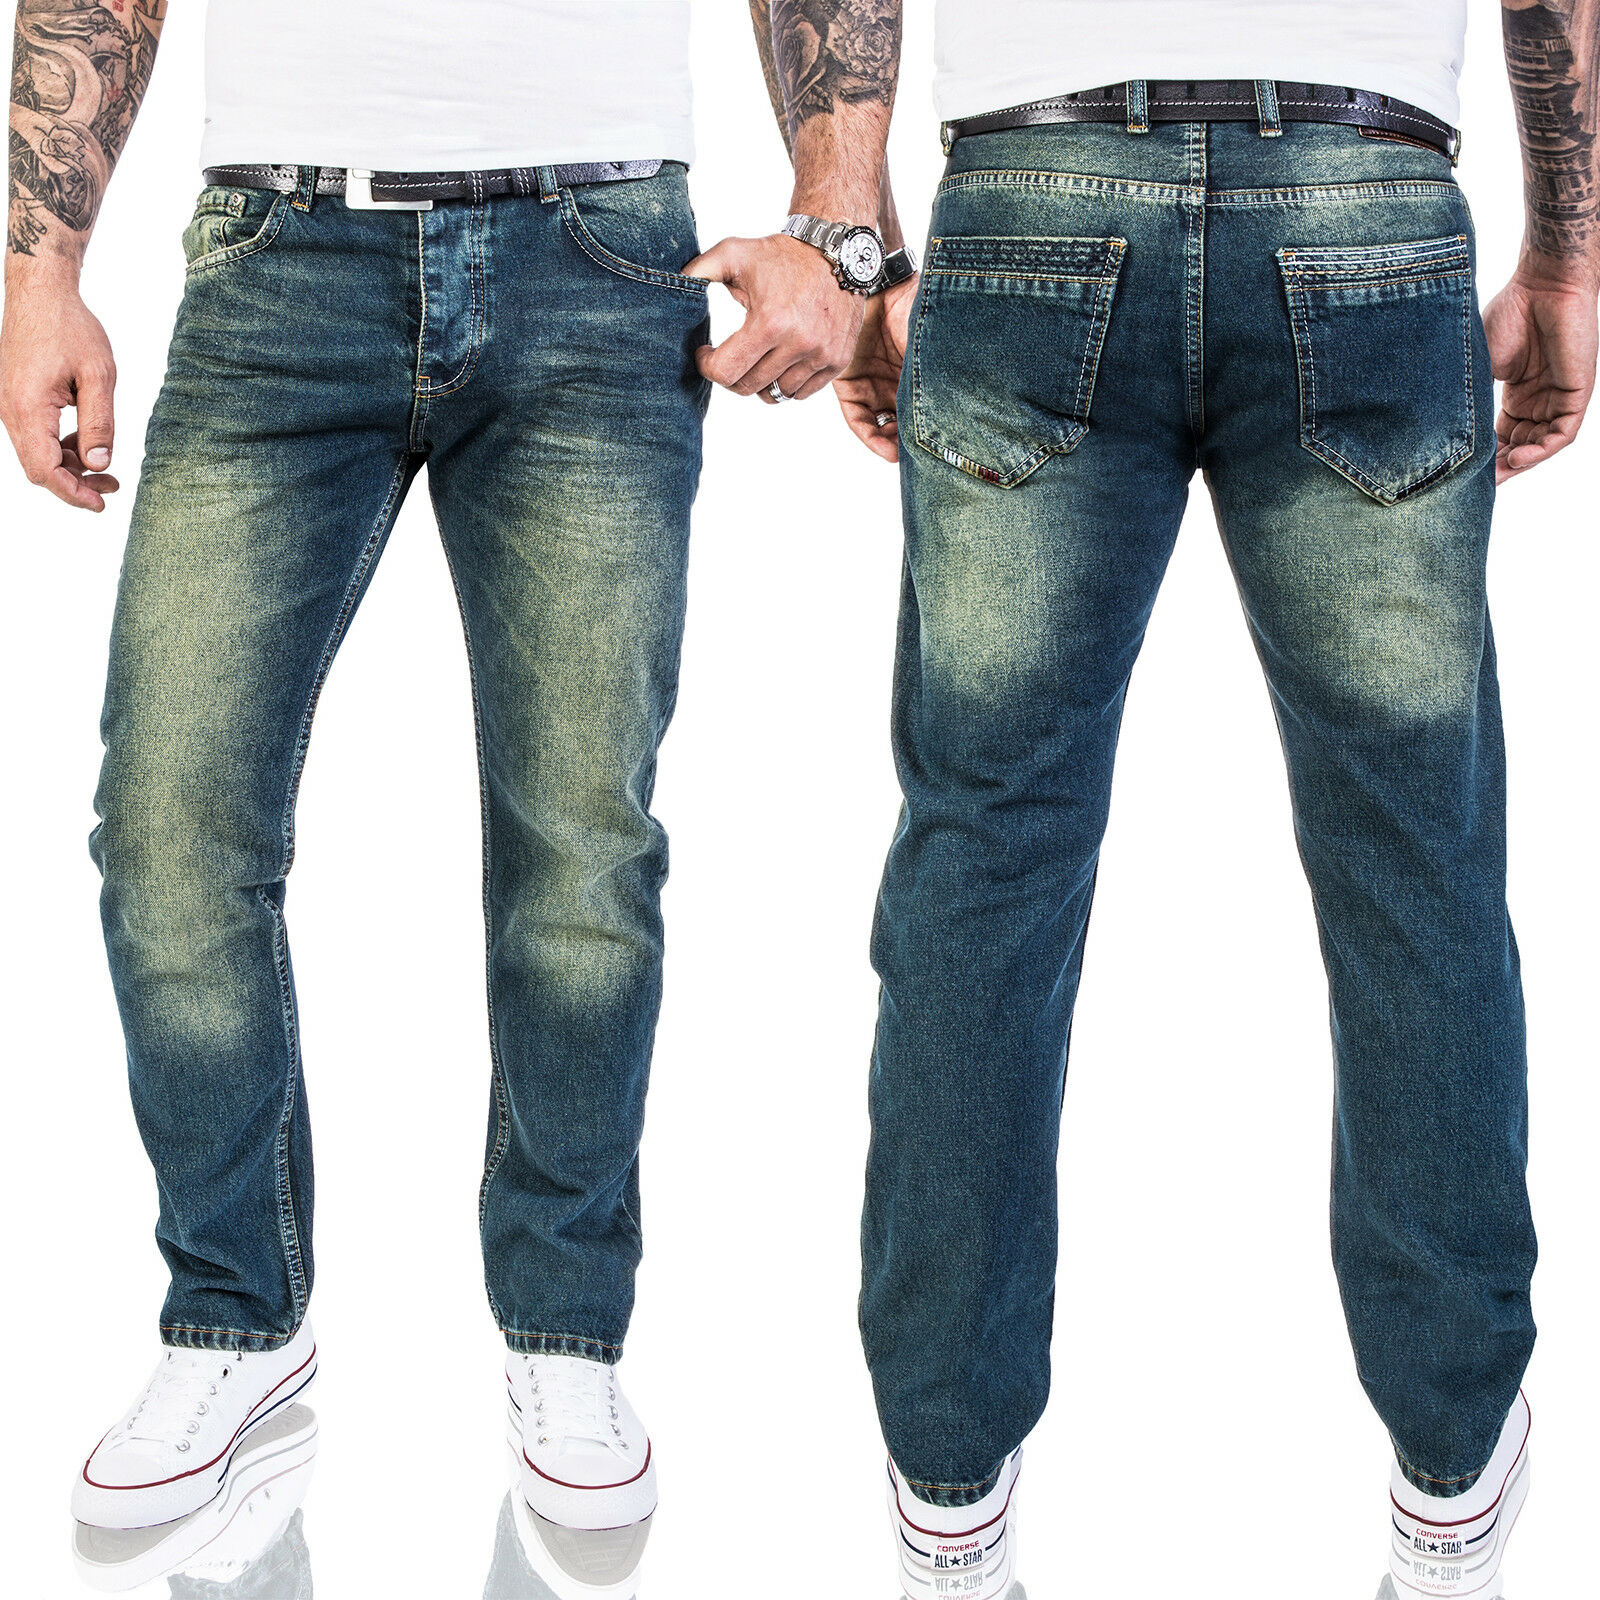 Herren Jeans Hose Regular Fit Blau Lorenzo Loren Jeans Denim Used-Look LL-387